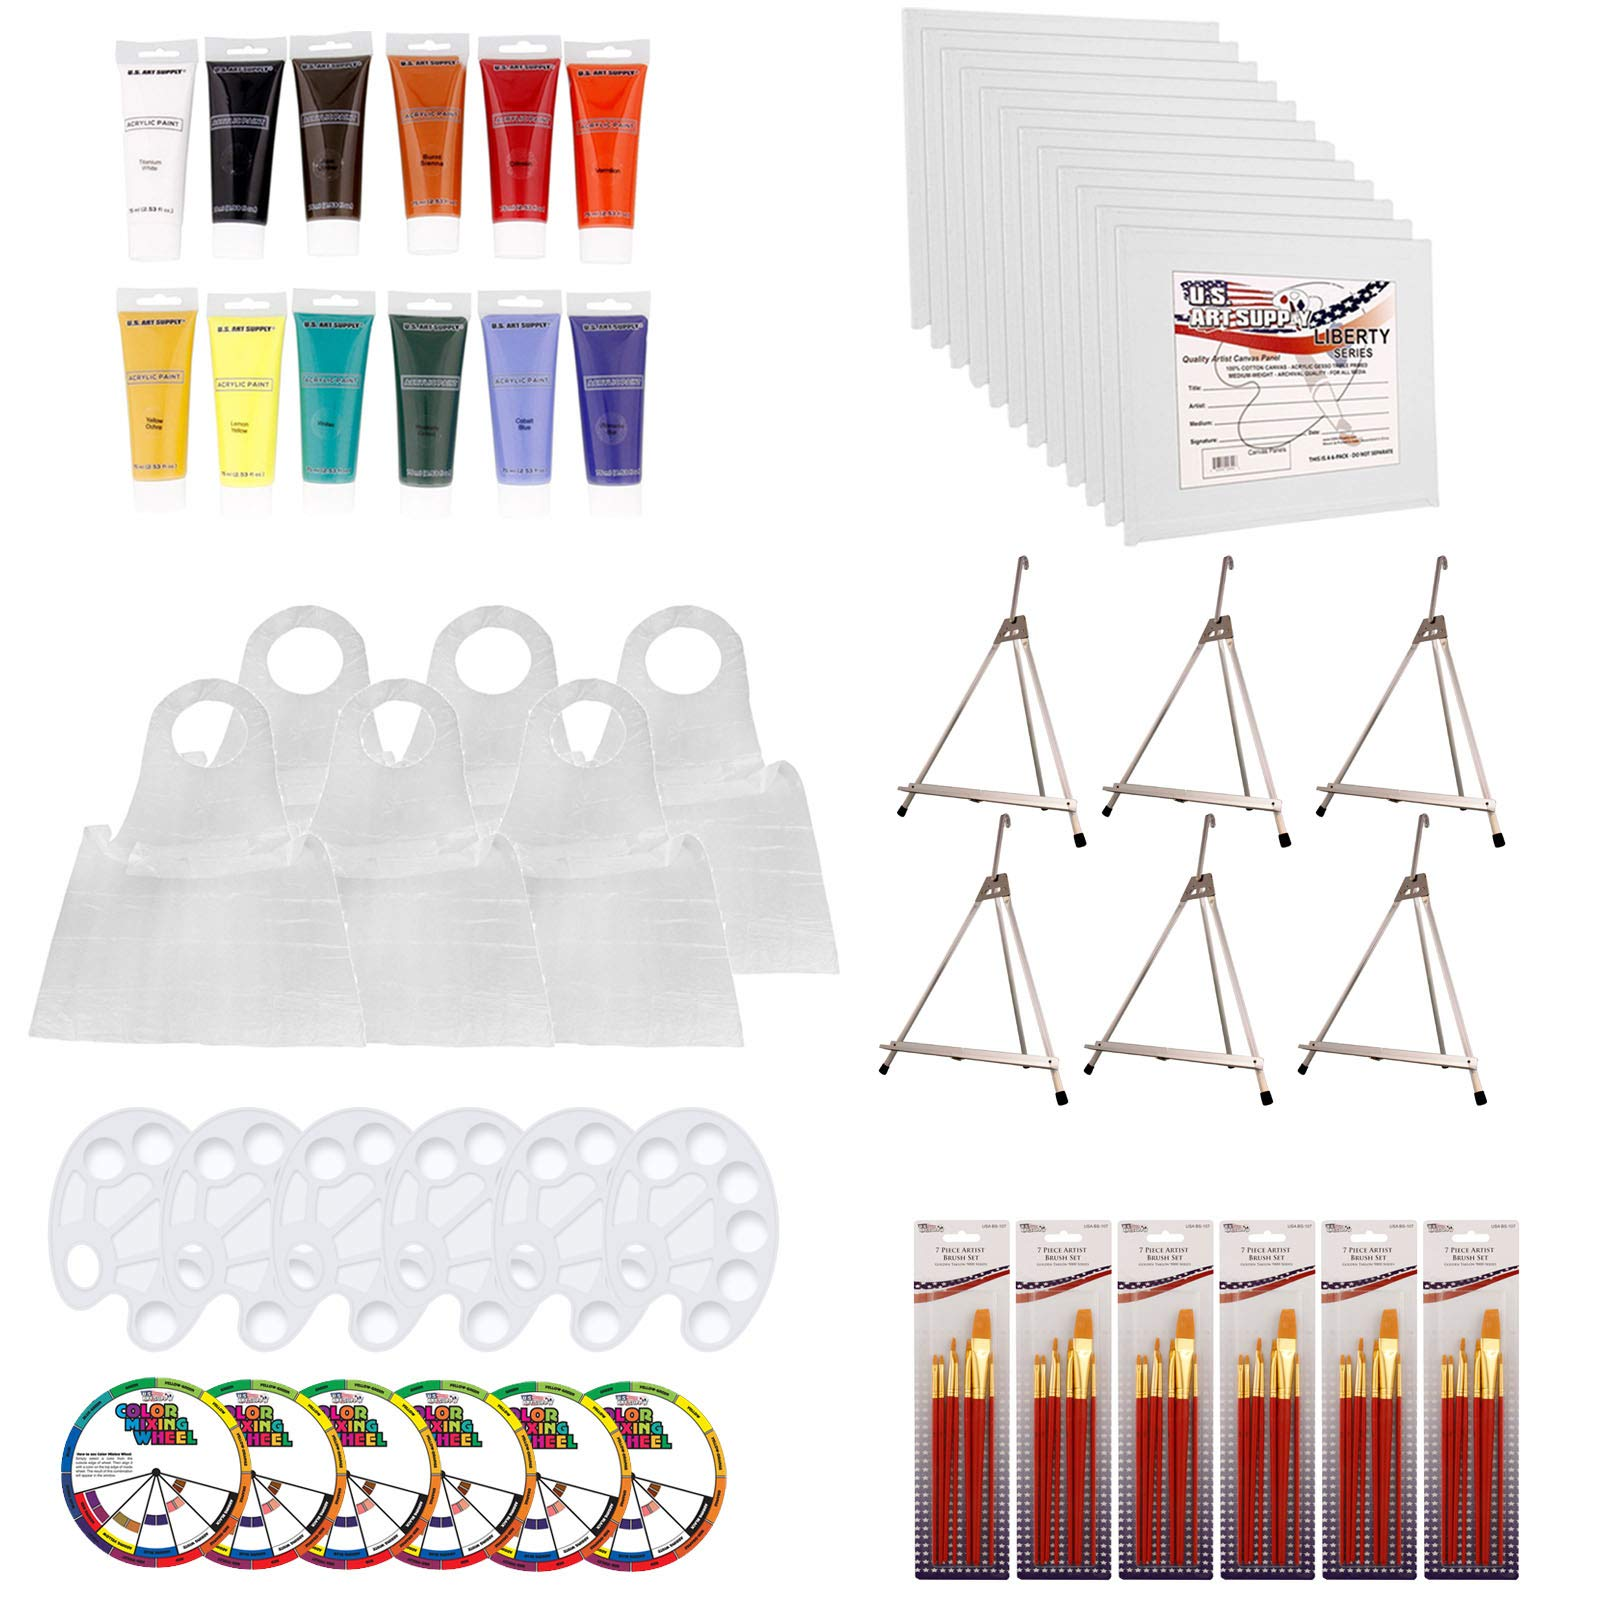 U.S. Art Supply Paint and Sip Art Party Painting Kit - 6 Easels, 12 Paint Tube Set, 12 Canvas Panels, 6 Brush Sets & 6 Disposable Poly Aprons